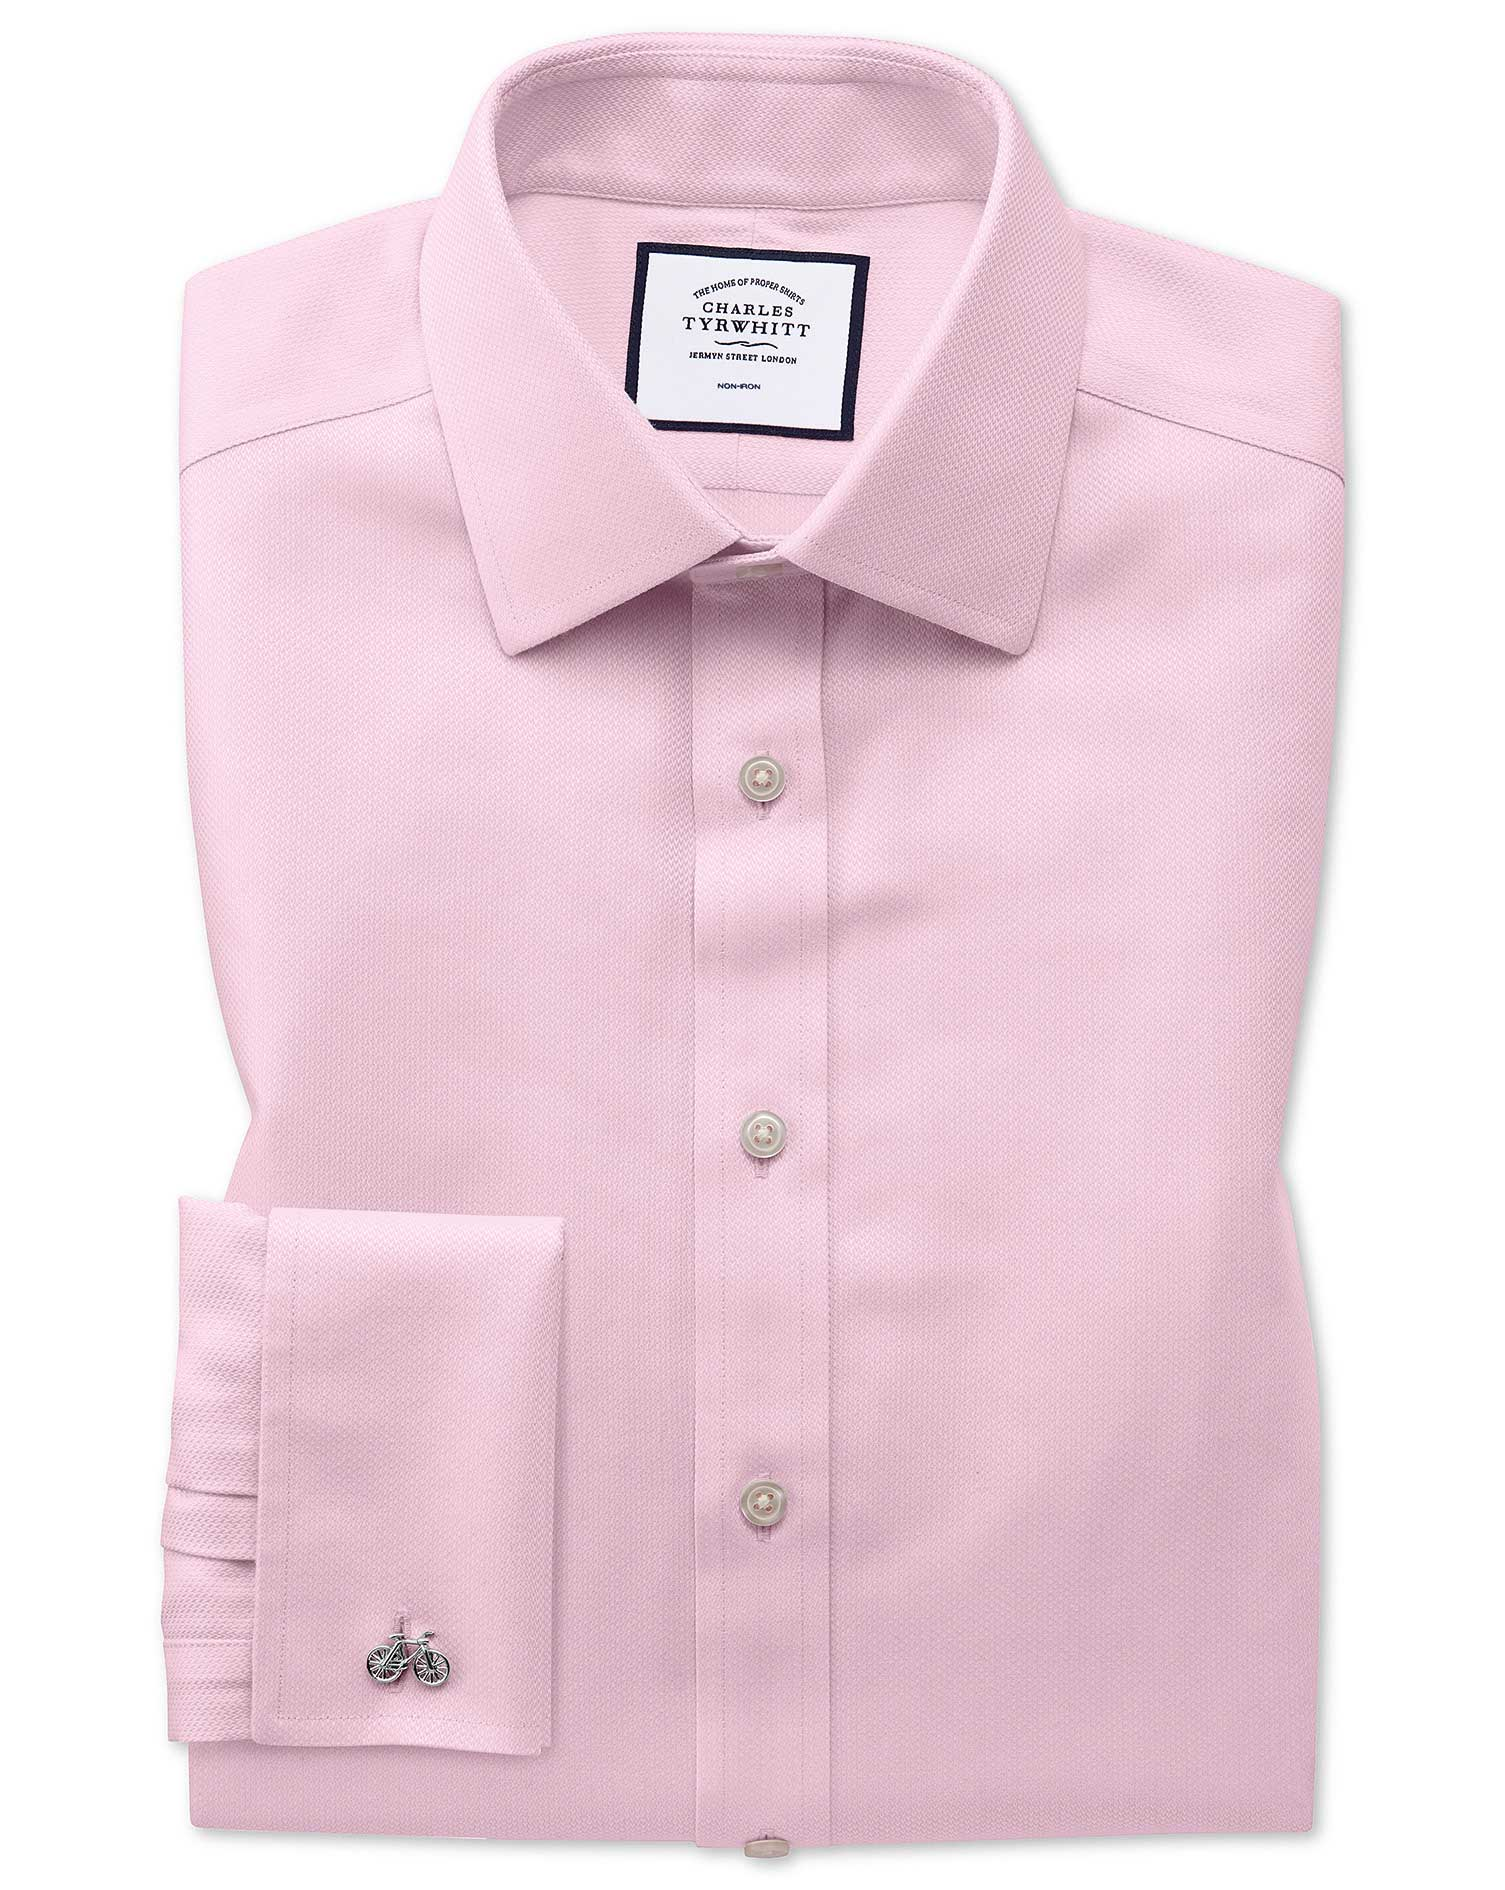 Slim Fit Non-Iron Pink Arrow Weave Cotton Formal Shirt Single Cuff Size 16.5/34 by Charles Tyrwhitt